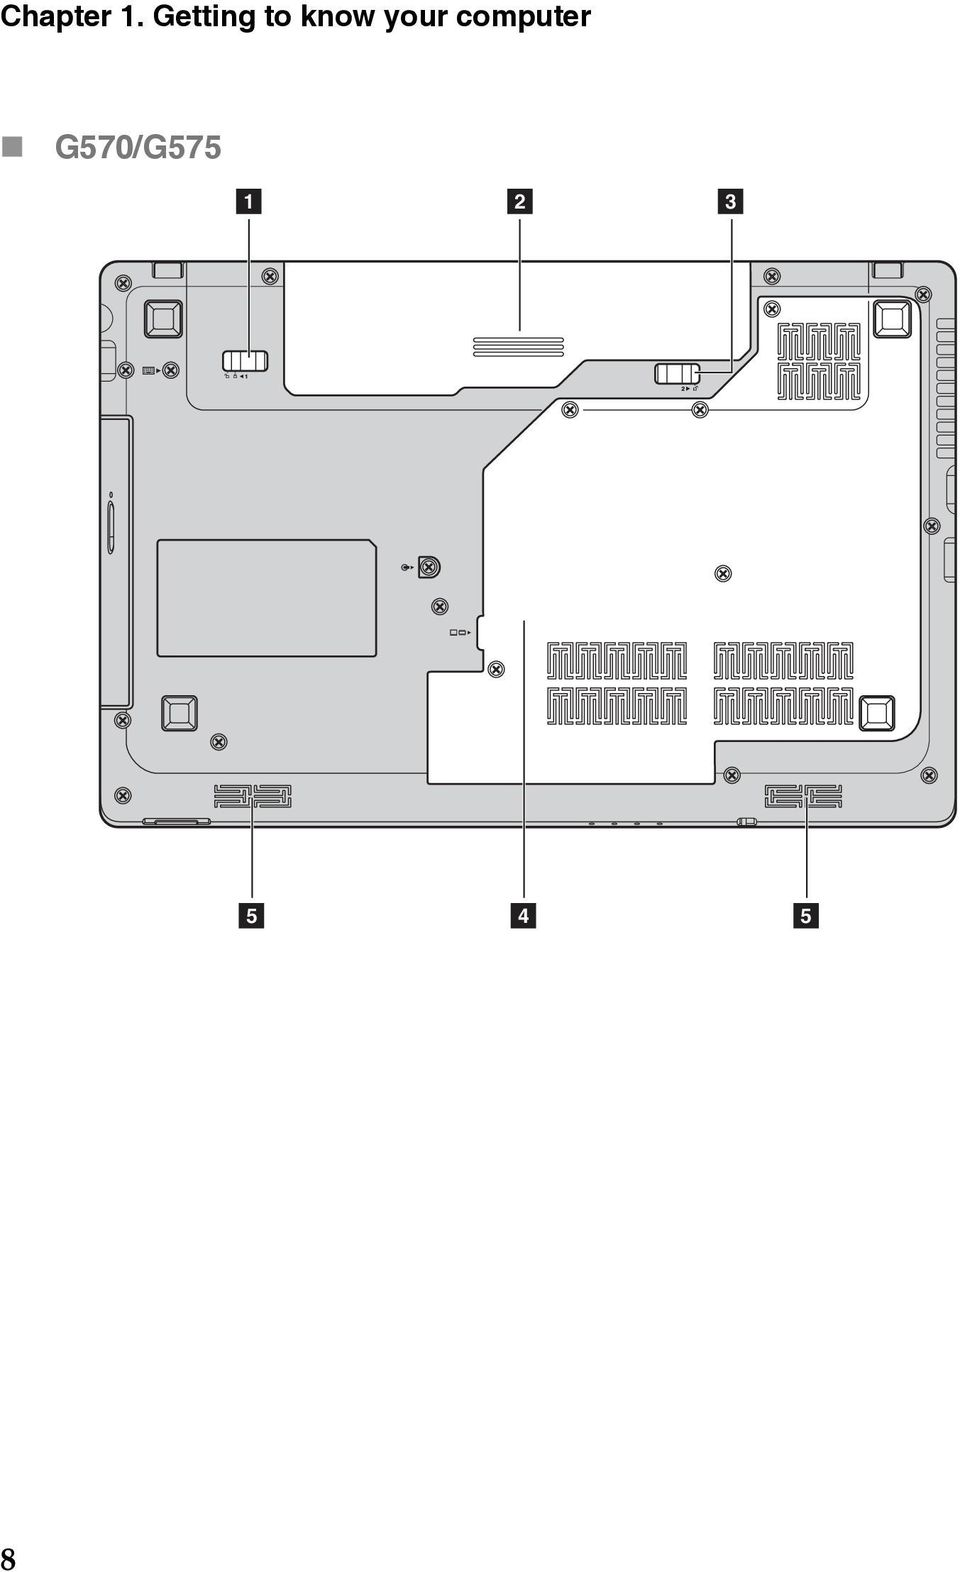 medium resolution of 13 chapter 1 getting to know your computer a b c d e battery latch manual battery pack battery latch spring loaded hard disk drive hdd memory cpu